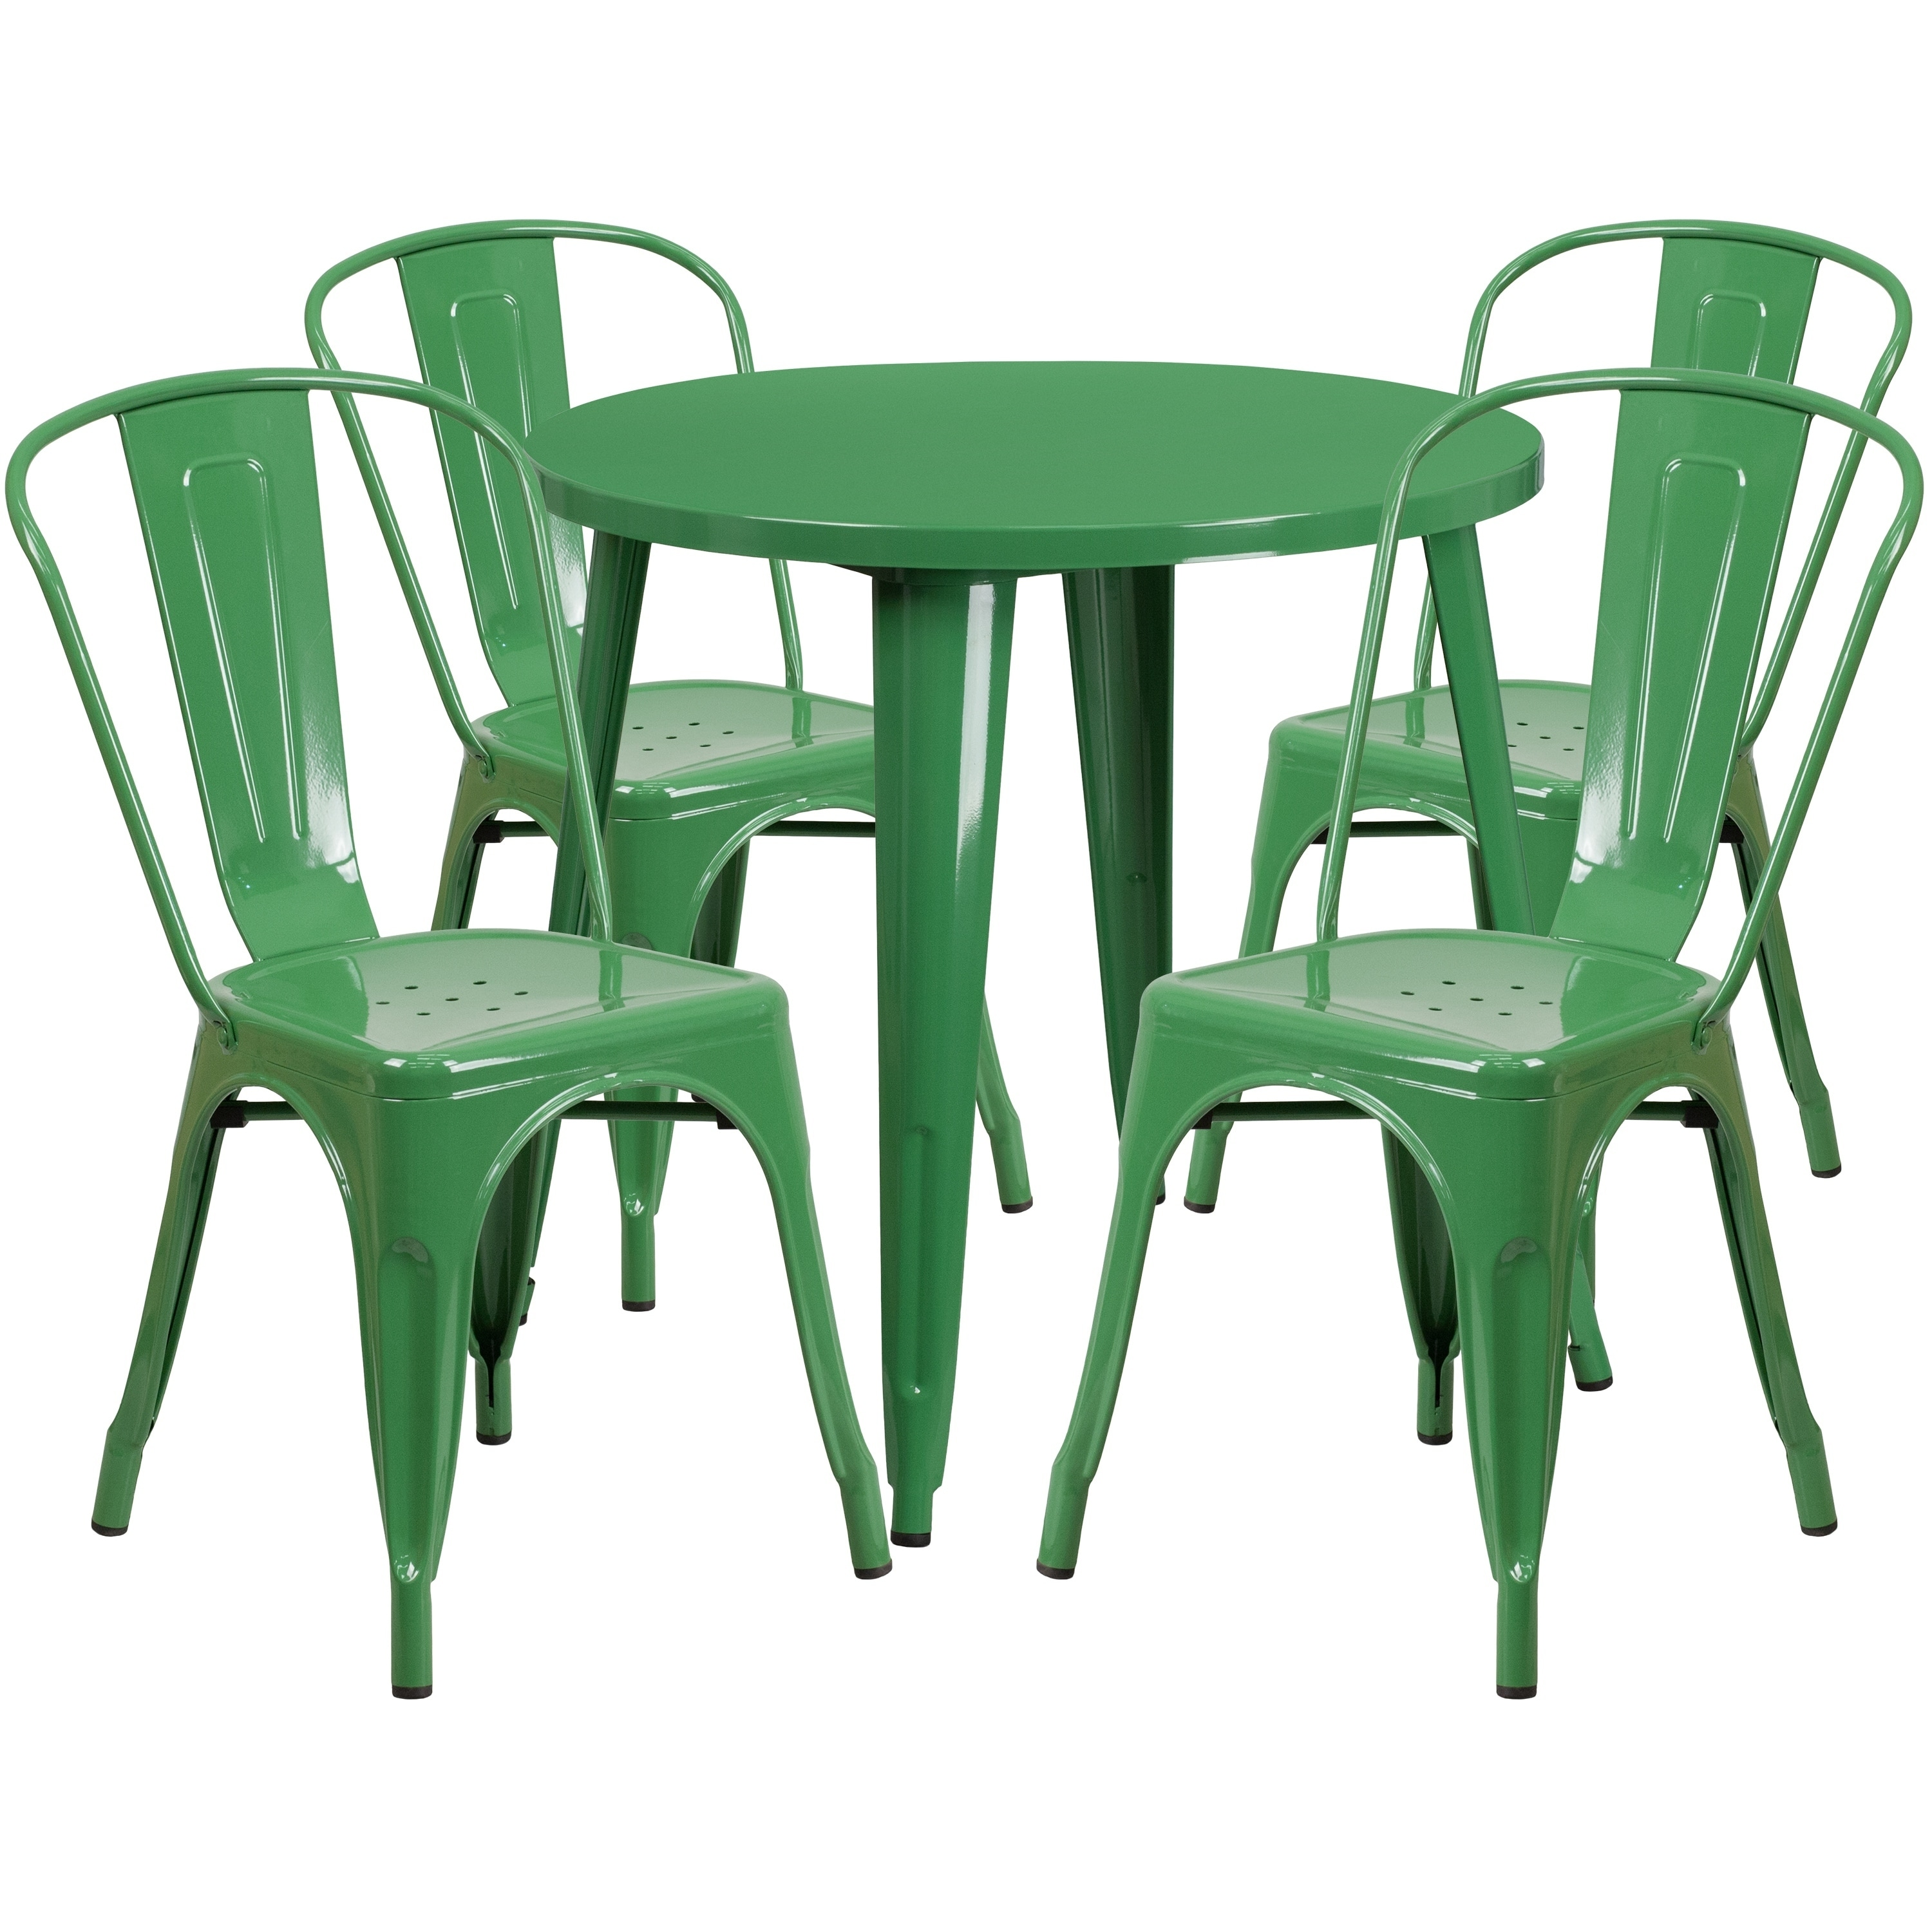 Awe Inspiring 30 Round Metal Indoor Outdoor Table Set With 4 Cafe Chairs Cjindustries Chair Design For Home Cjindustriesco